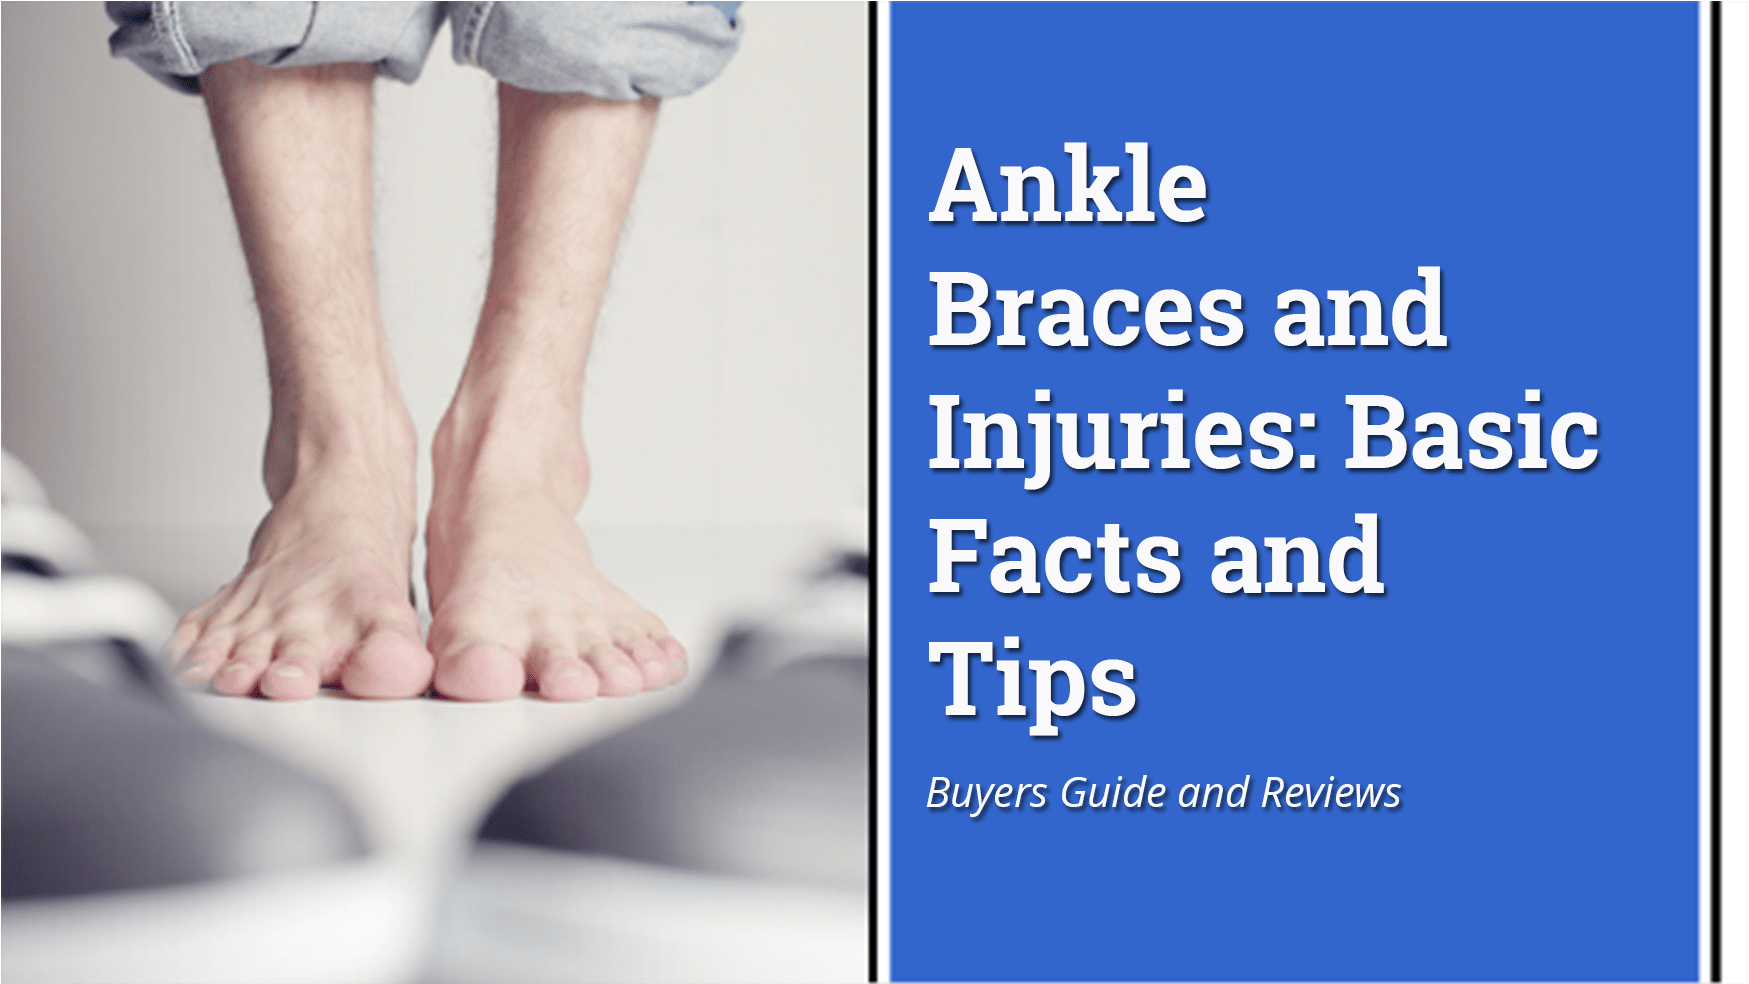 Ankle Braces and Injuries - Basic Facts and Tips